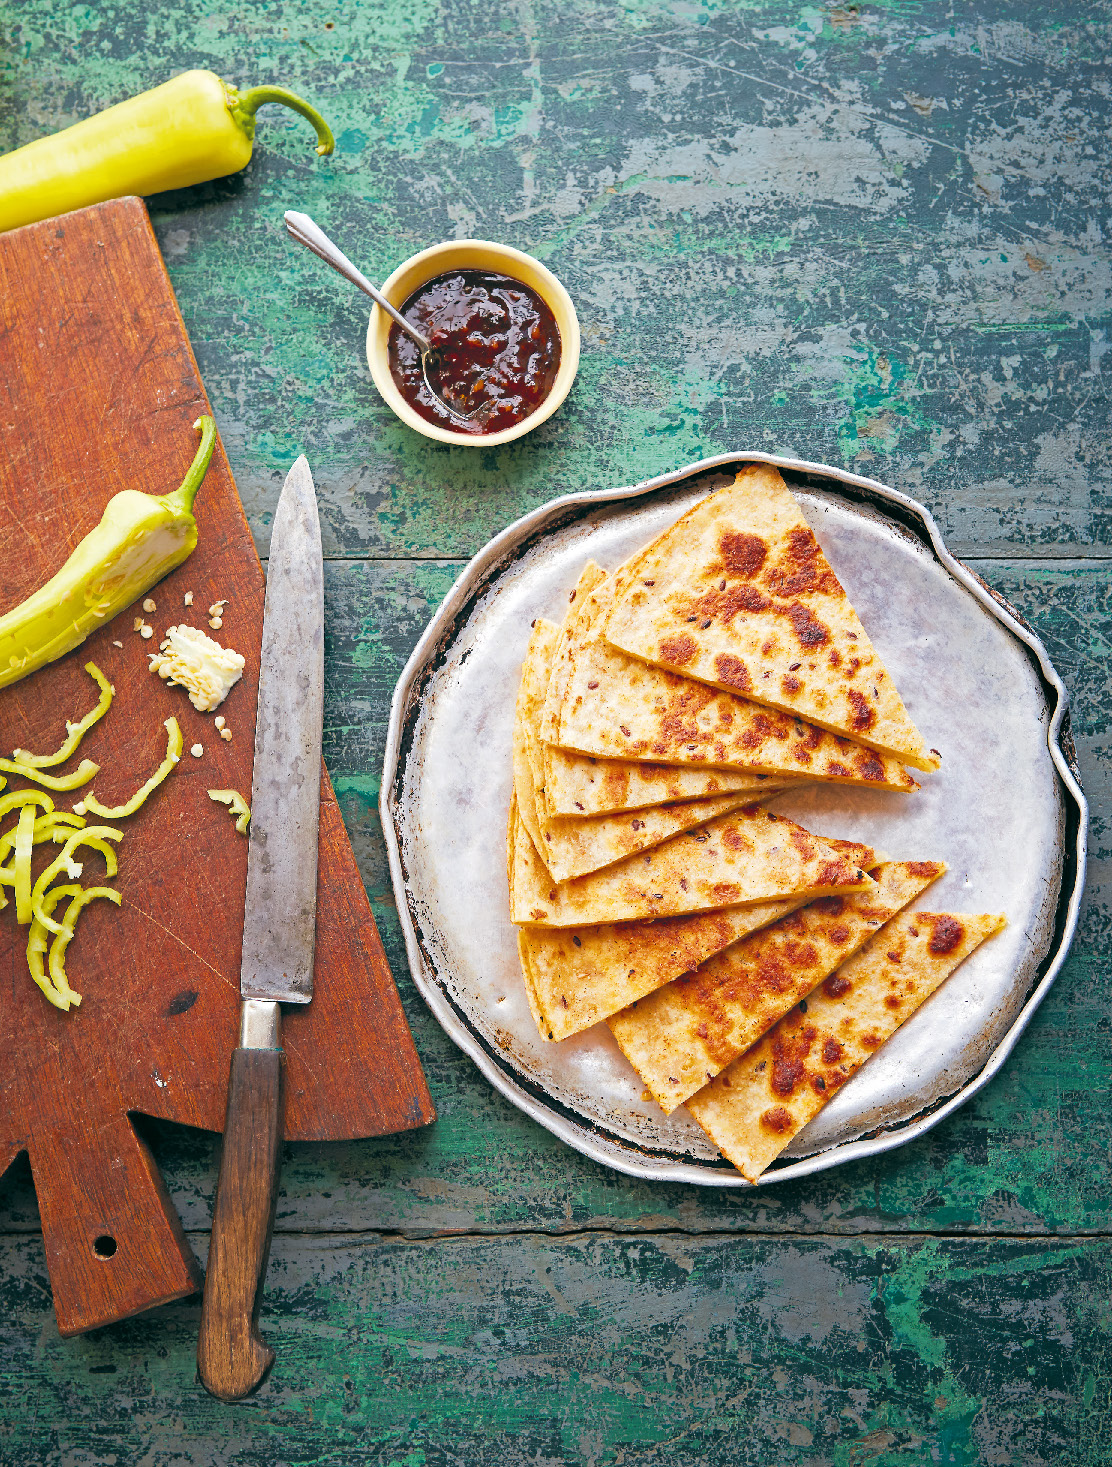 Double cheese quesadillas